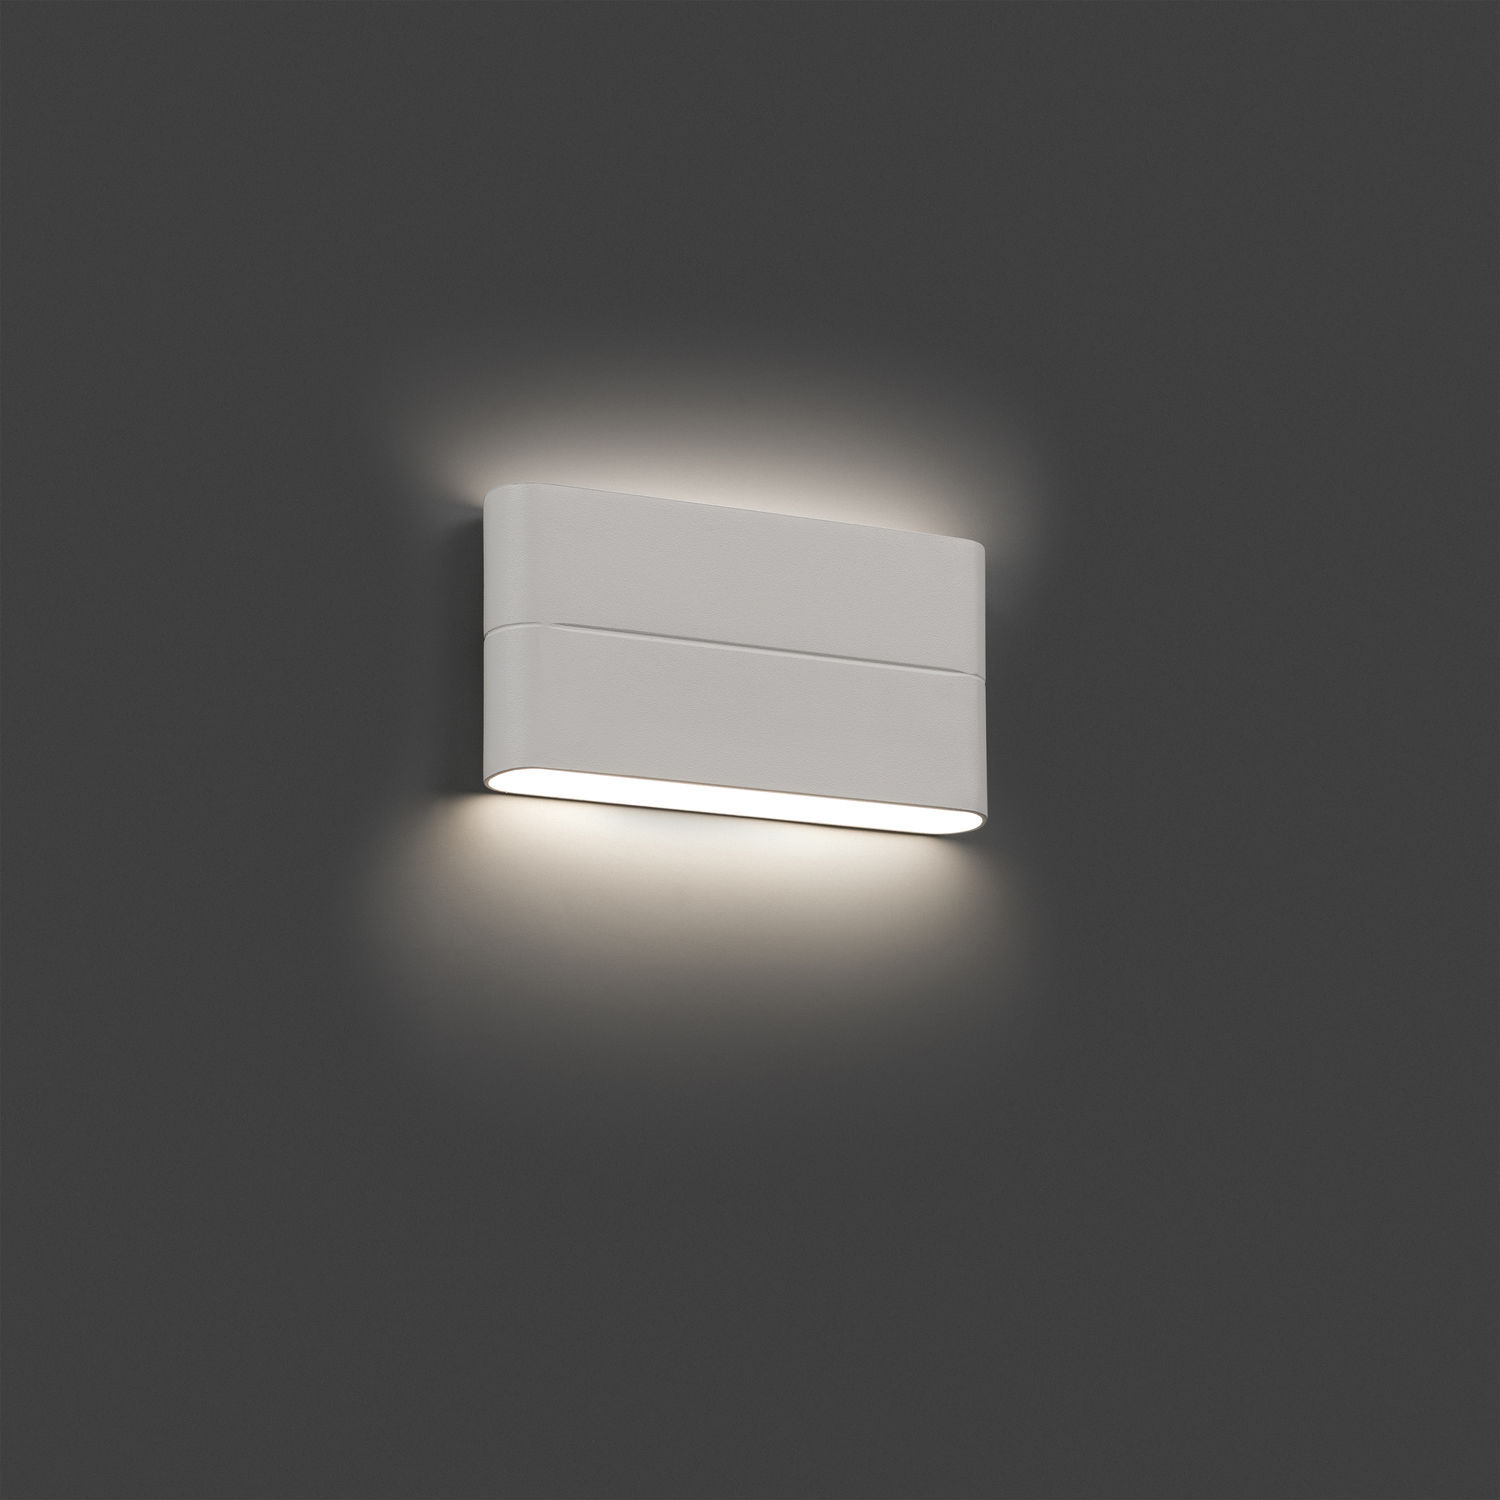 Applique murale d 39 ext rieur aday 2 led ip54 blanc l17 for Applique murale luminaire exterieur design